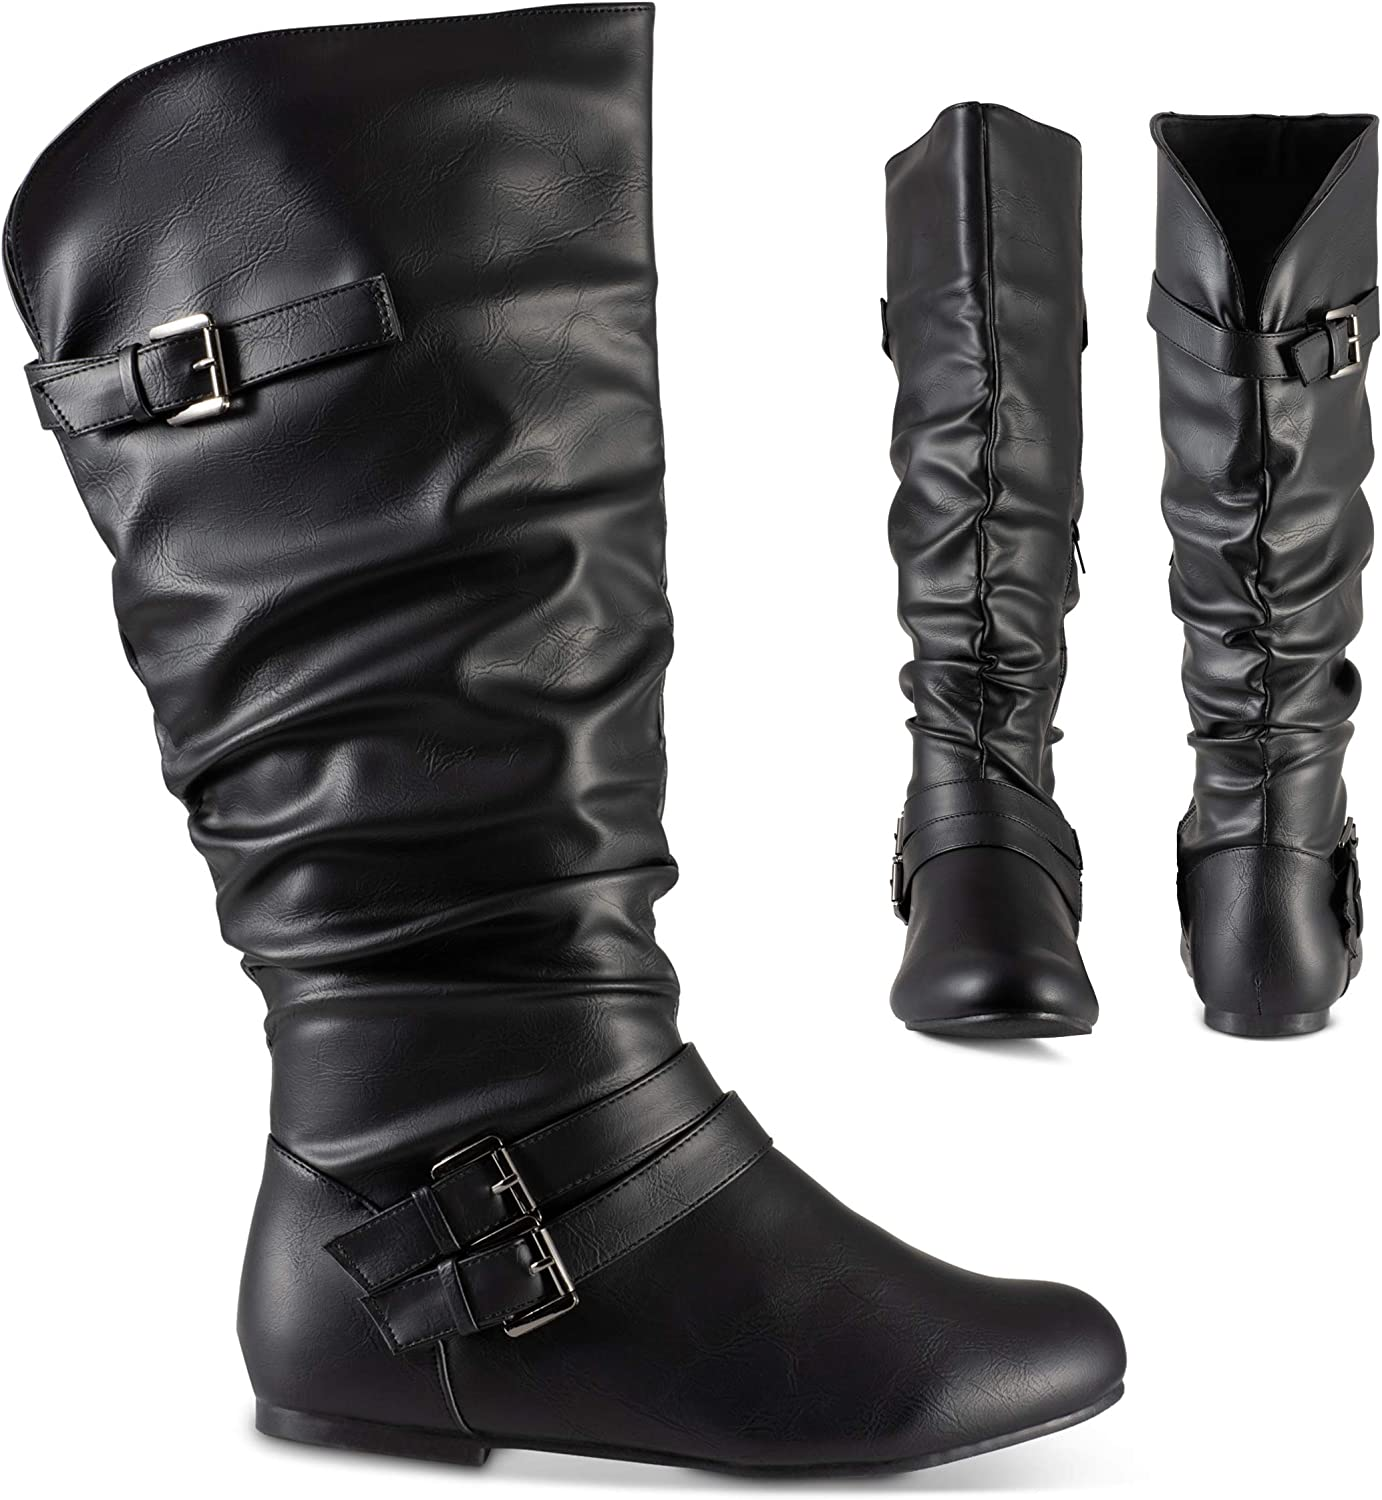 Flat Mid Calf Slouch Boots, Wide Calf